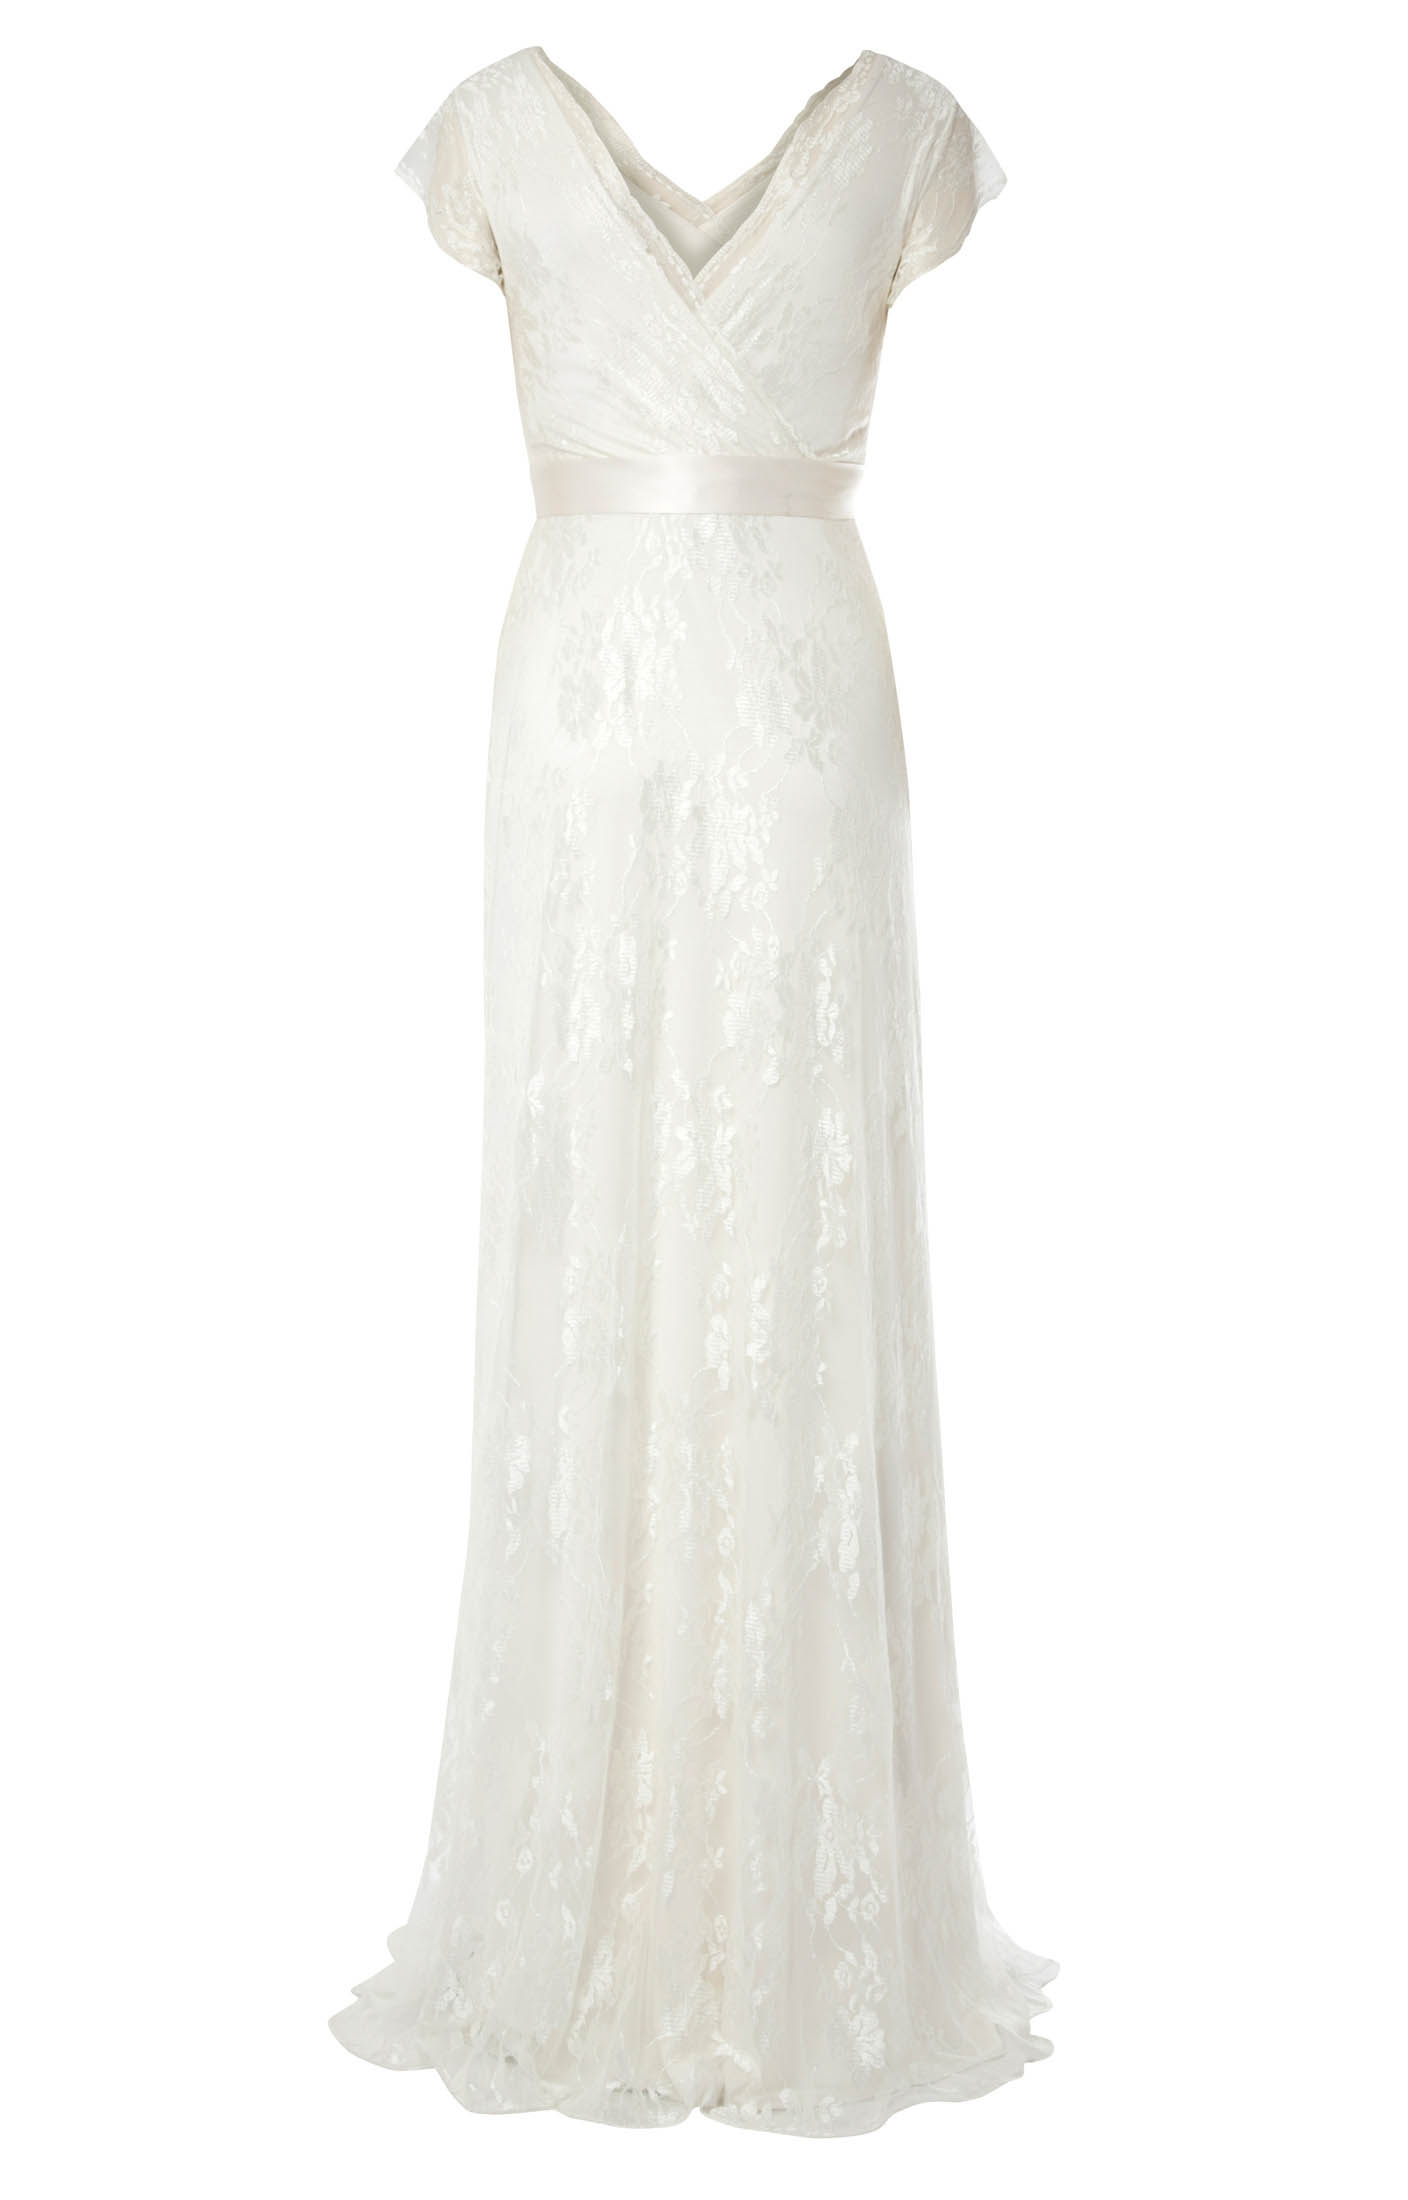 Eden Maternity Wedding Gown Long Ivory Dream Jolie Clothing Patsy Mini Dress Dresses Evening Wear And Party Clothes By Tiffany Rose Ie